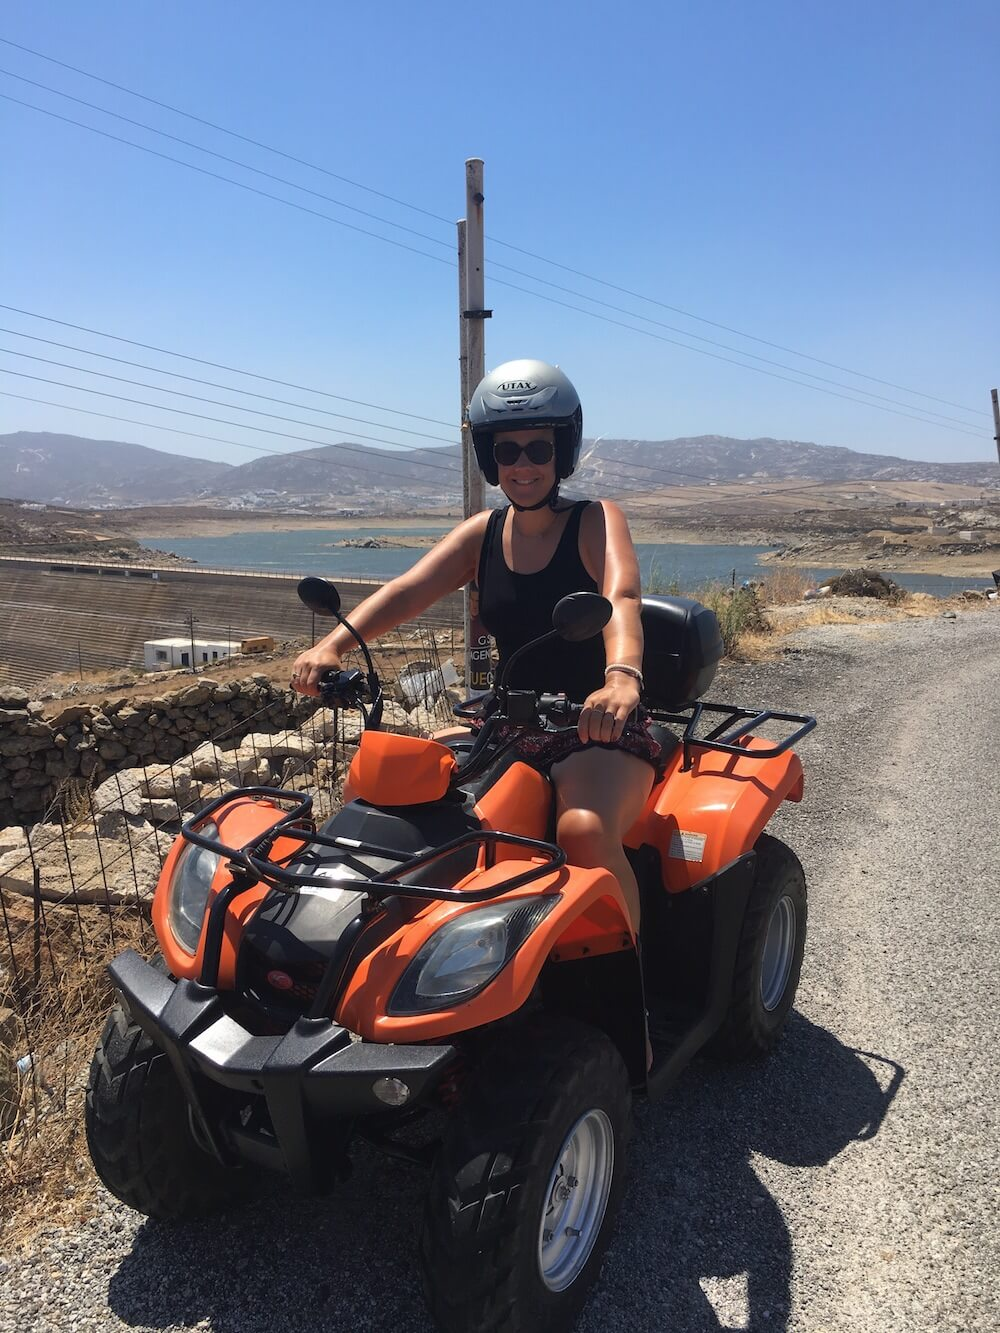 Me on the quad bike in Mykonos